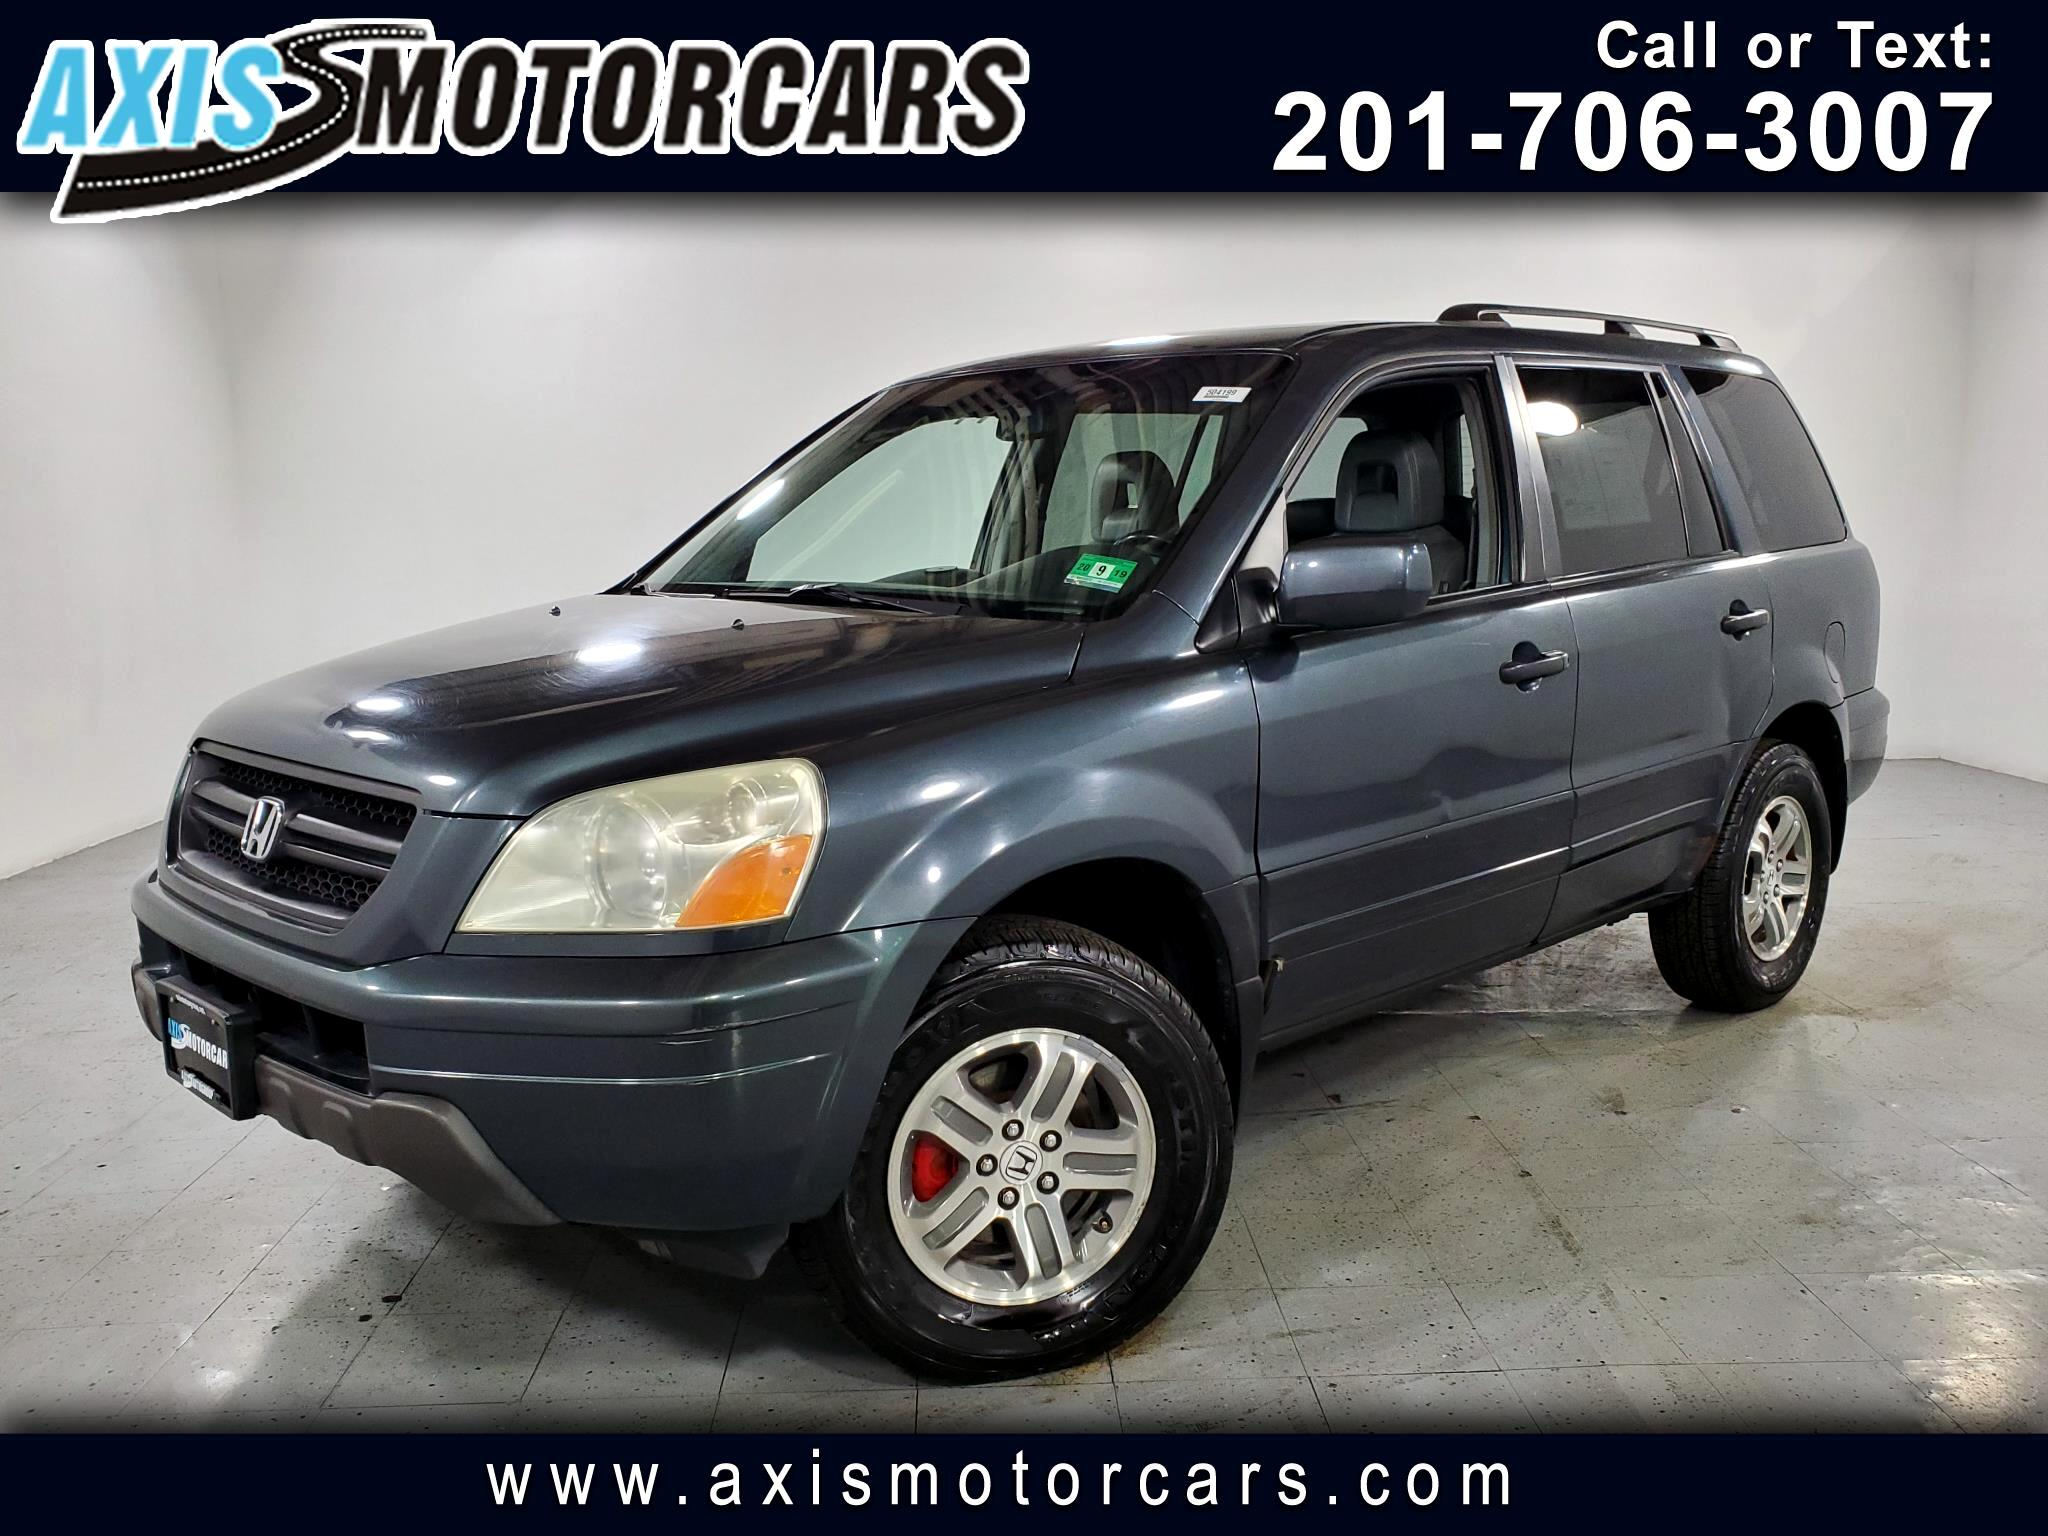 2004 Honda Pilot w/Leather Rear Entertainment System 3rd Seat Row